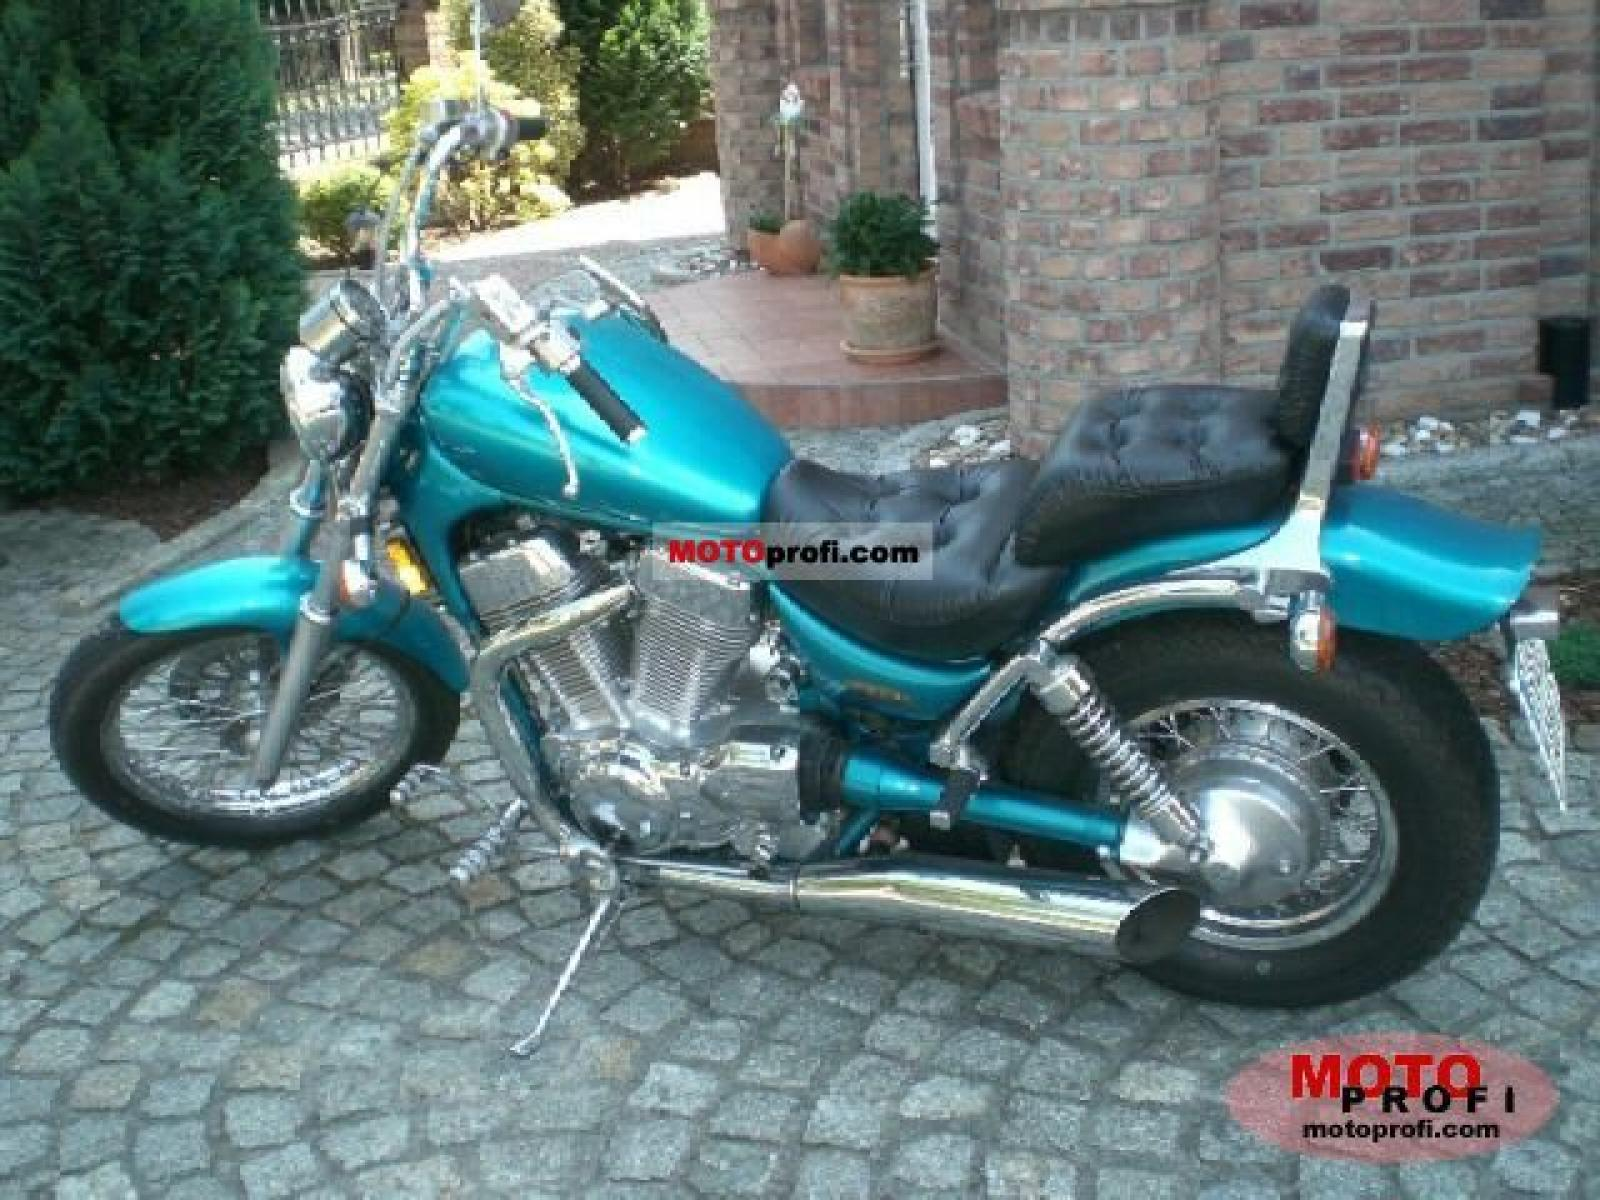 hight resolution of  2000 suzuki intruder 800 wiring diagram suzuki intruder 1400 wiring diagramt wiring library1996 suzuki vs 1400 glp intruder moto zombdrive com 1996